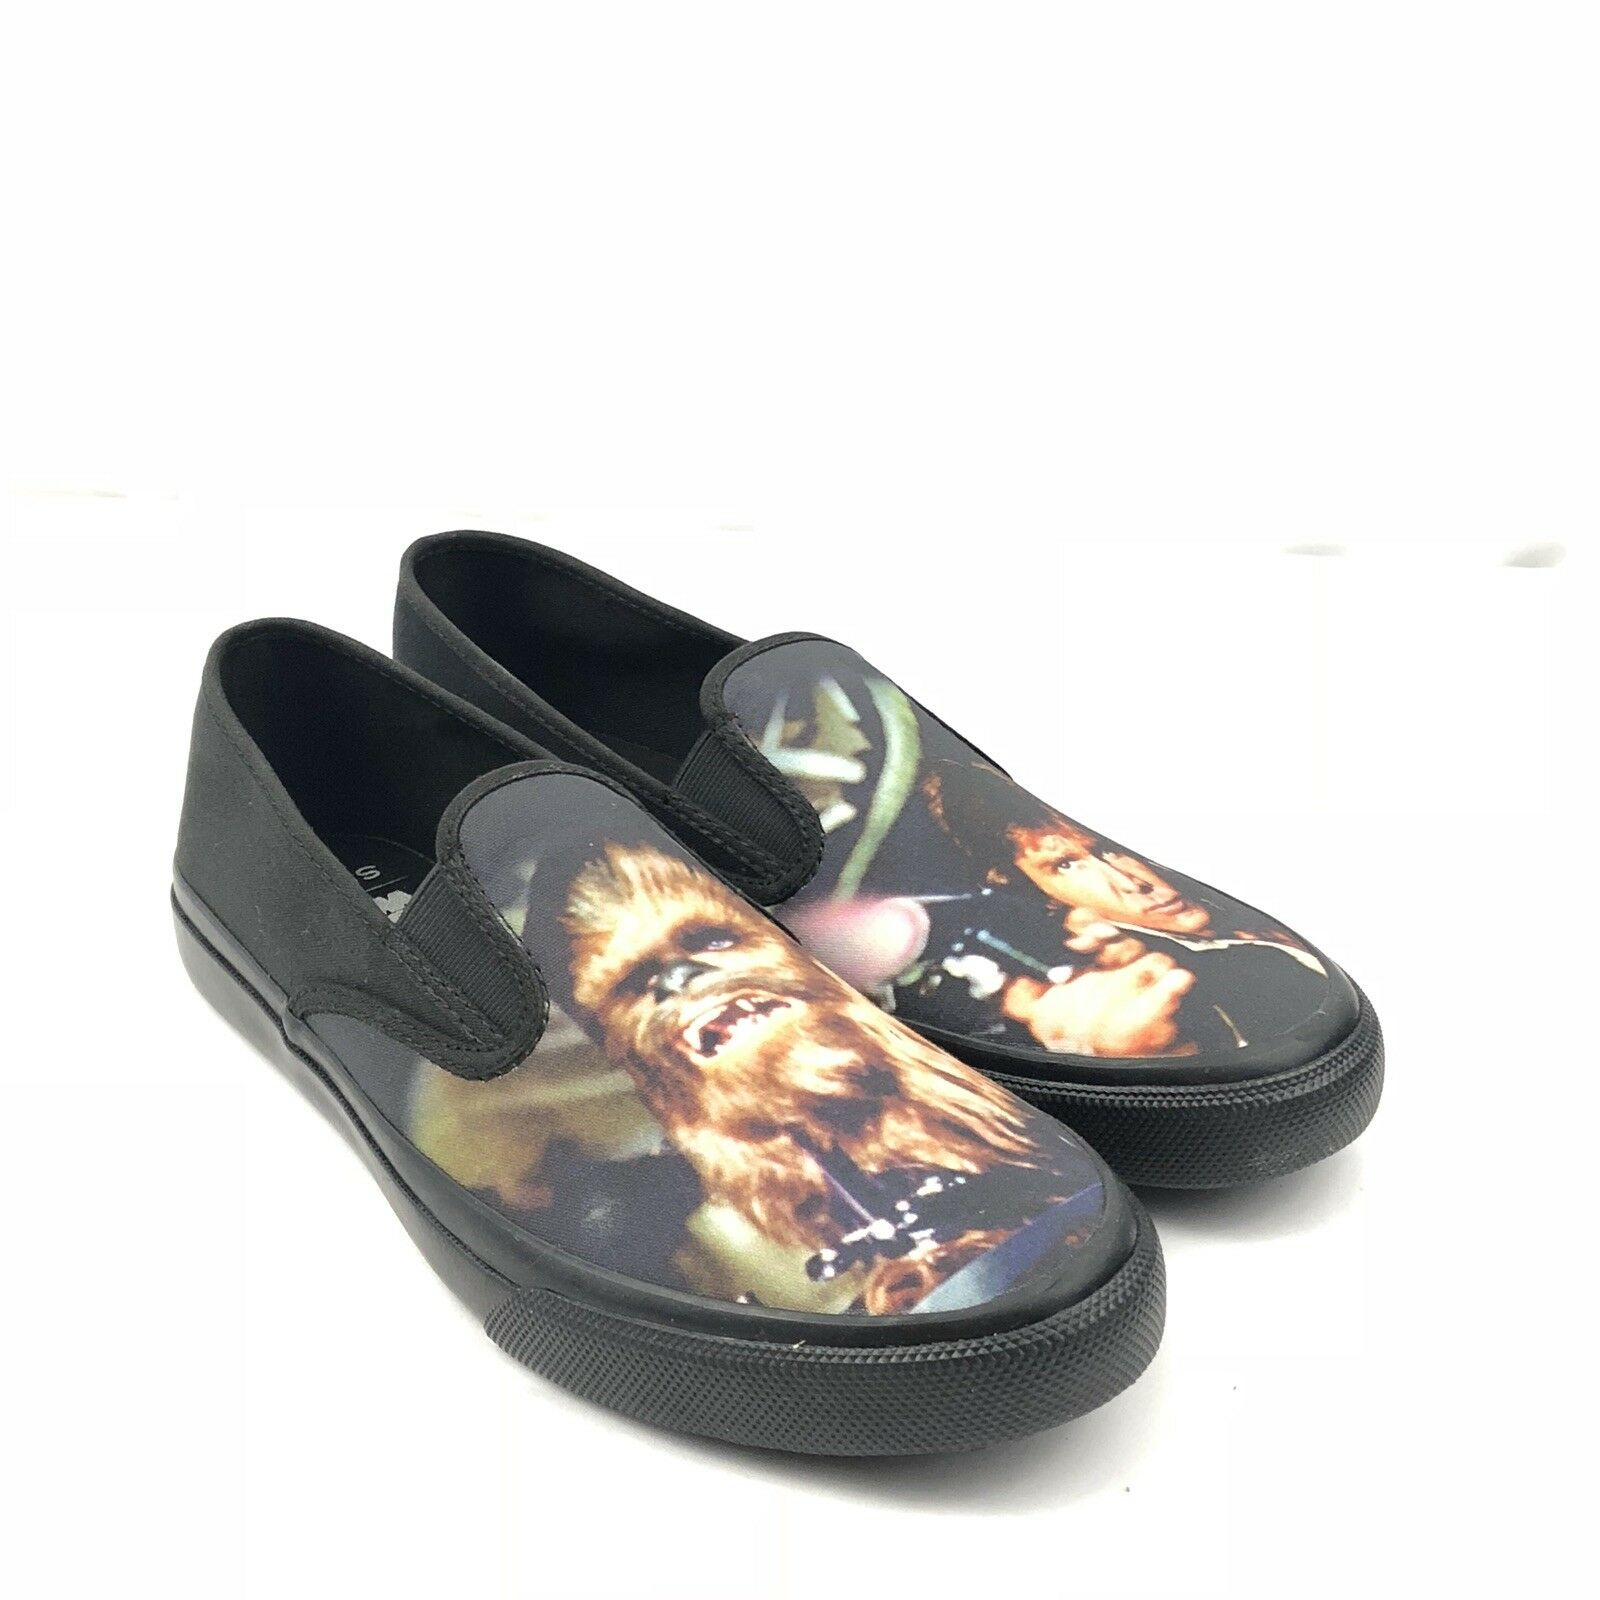 Star Wars Sperry Han Solo Slip On Size 11